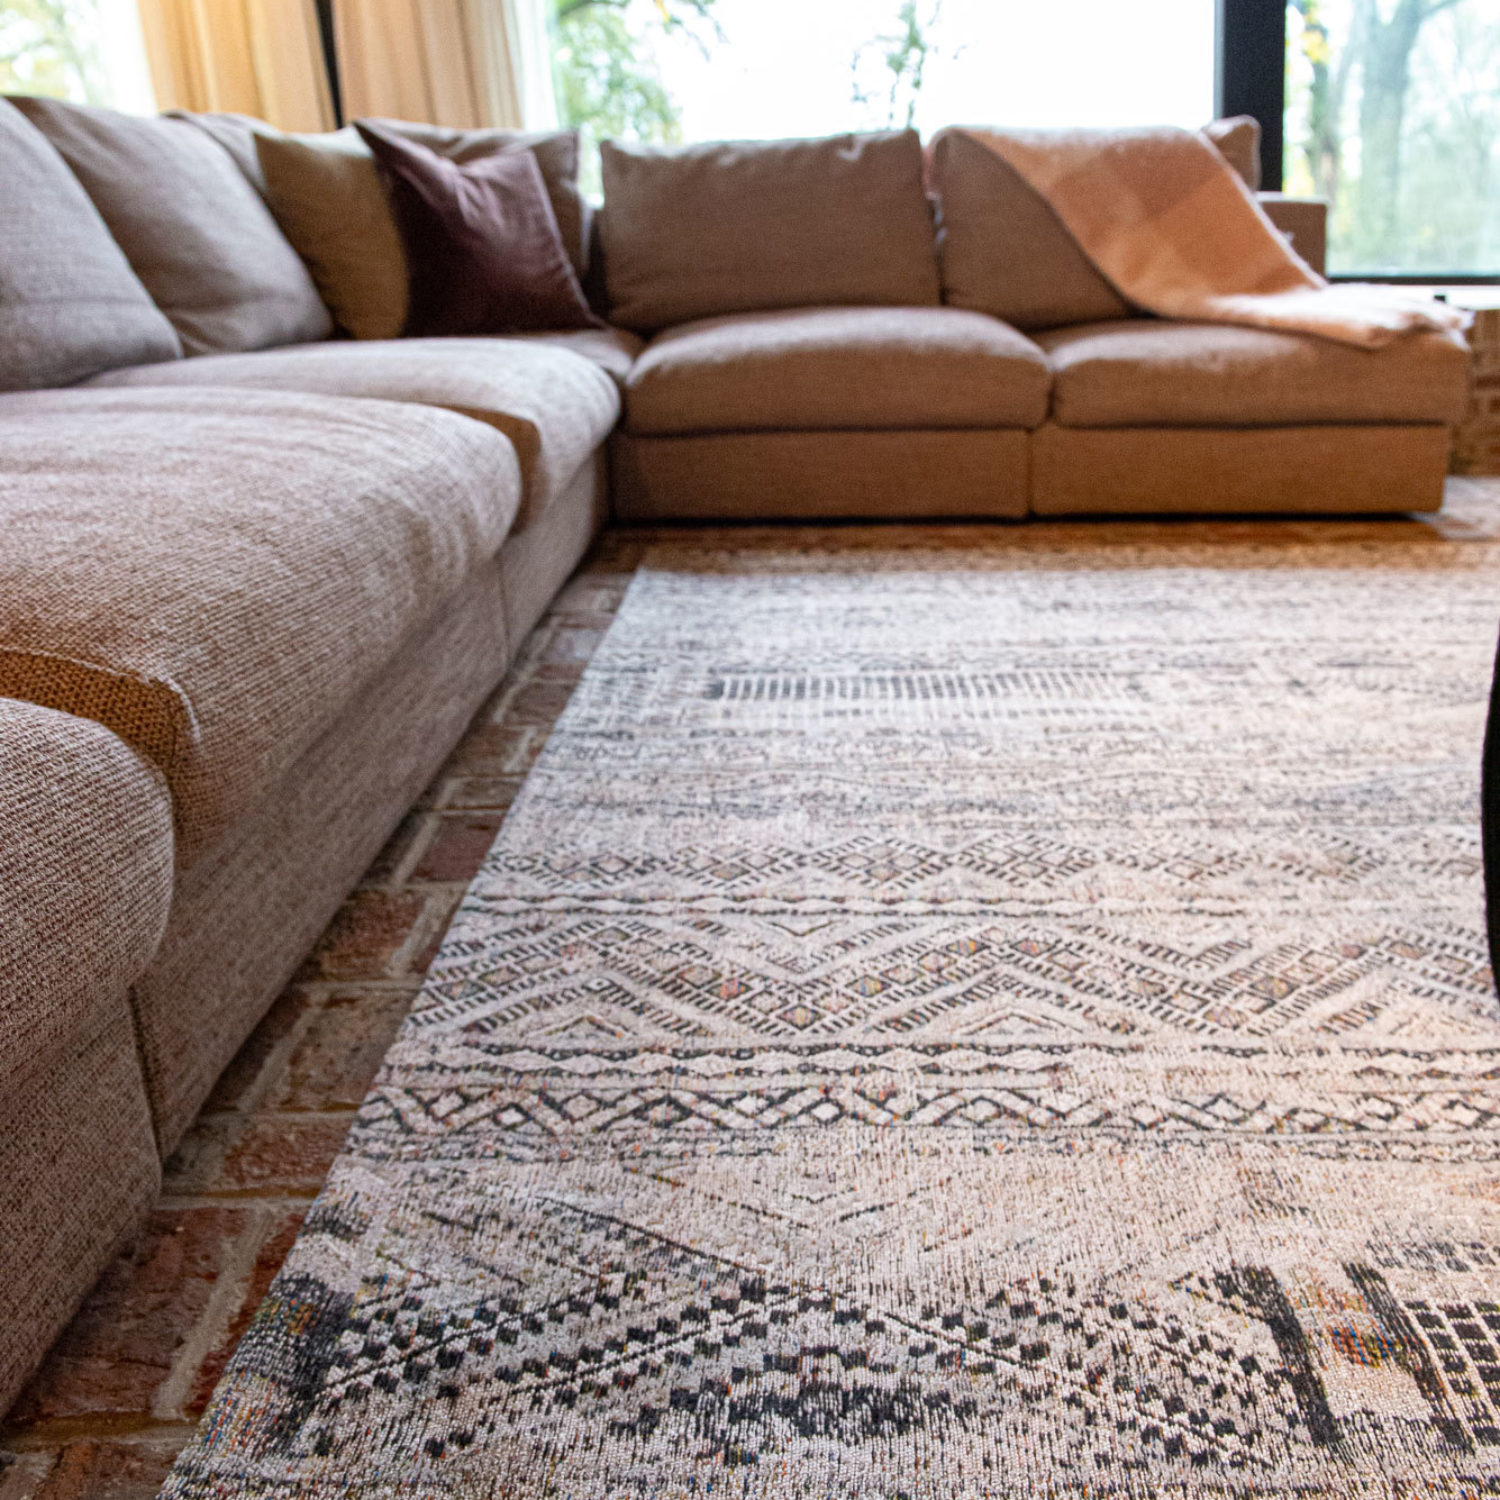 A classic Moroccan nomad pattern